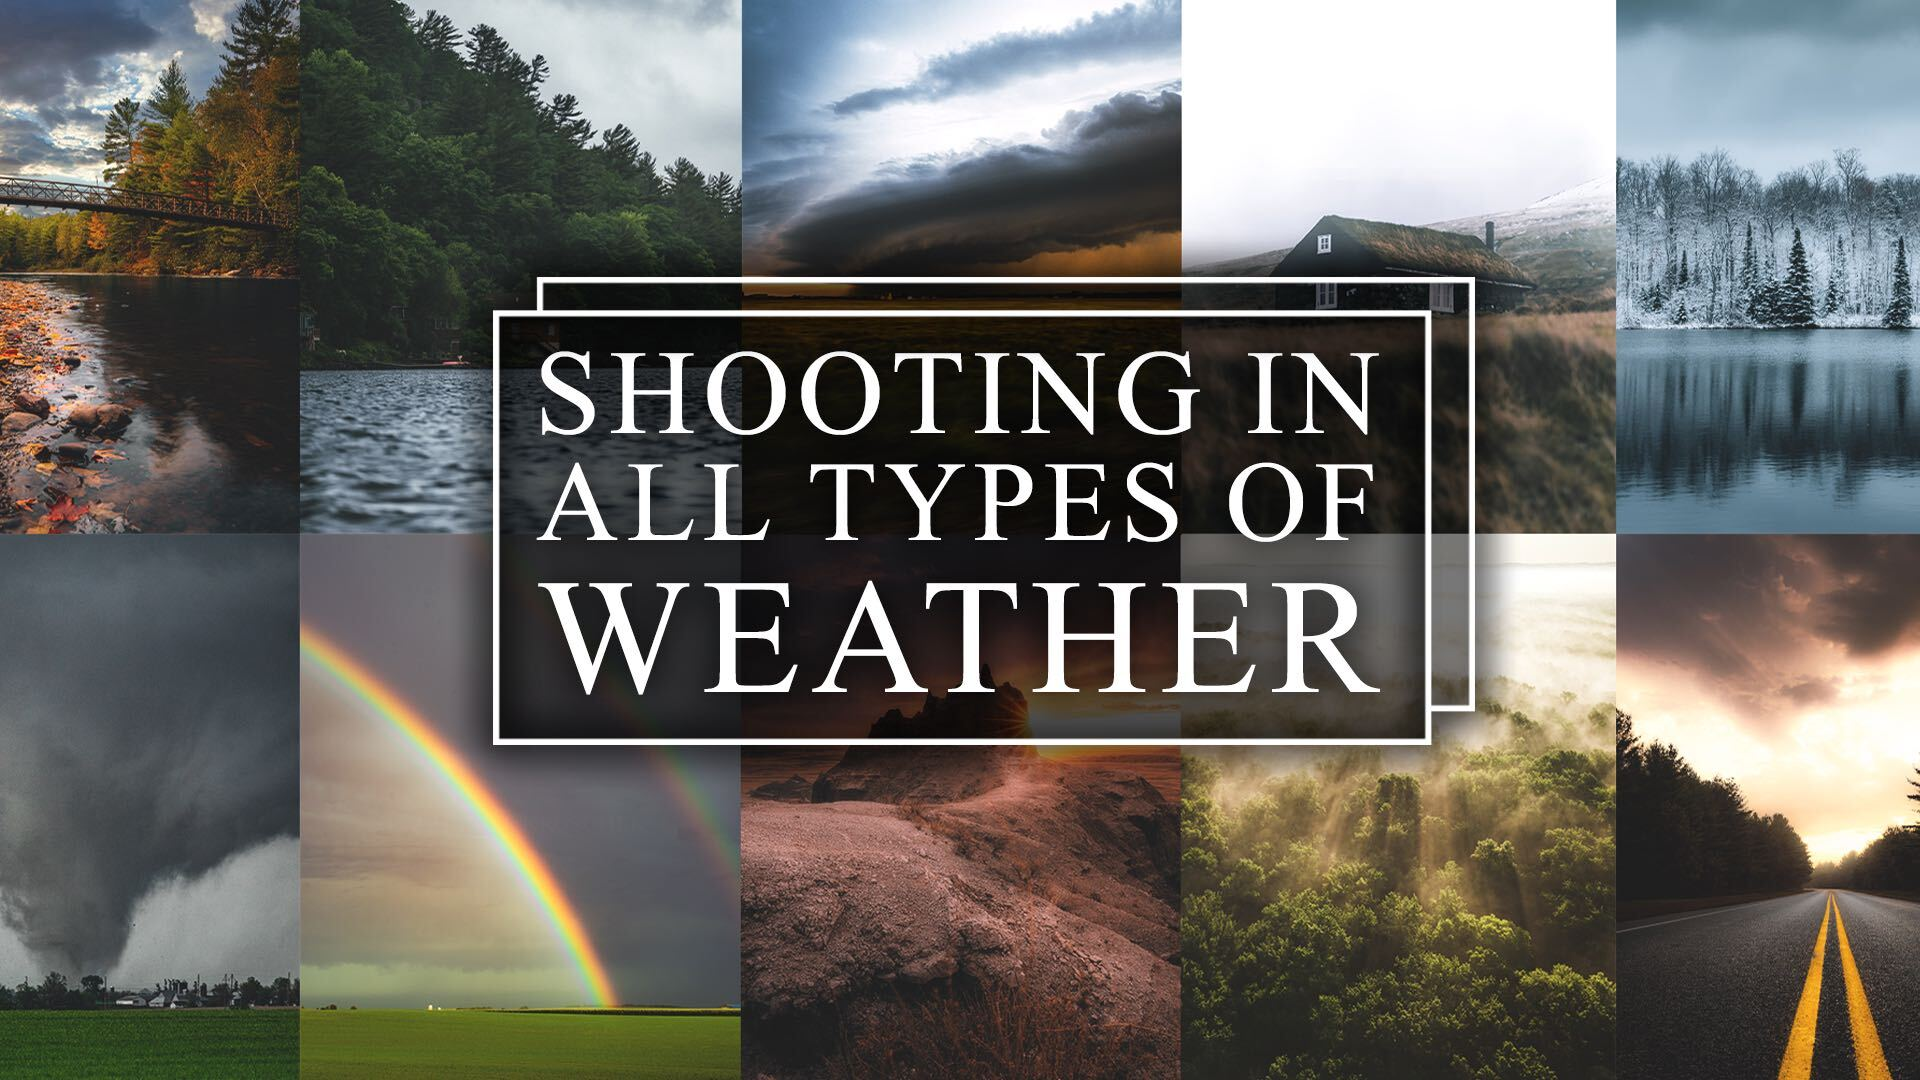 Shooting in All Types of Weather